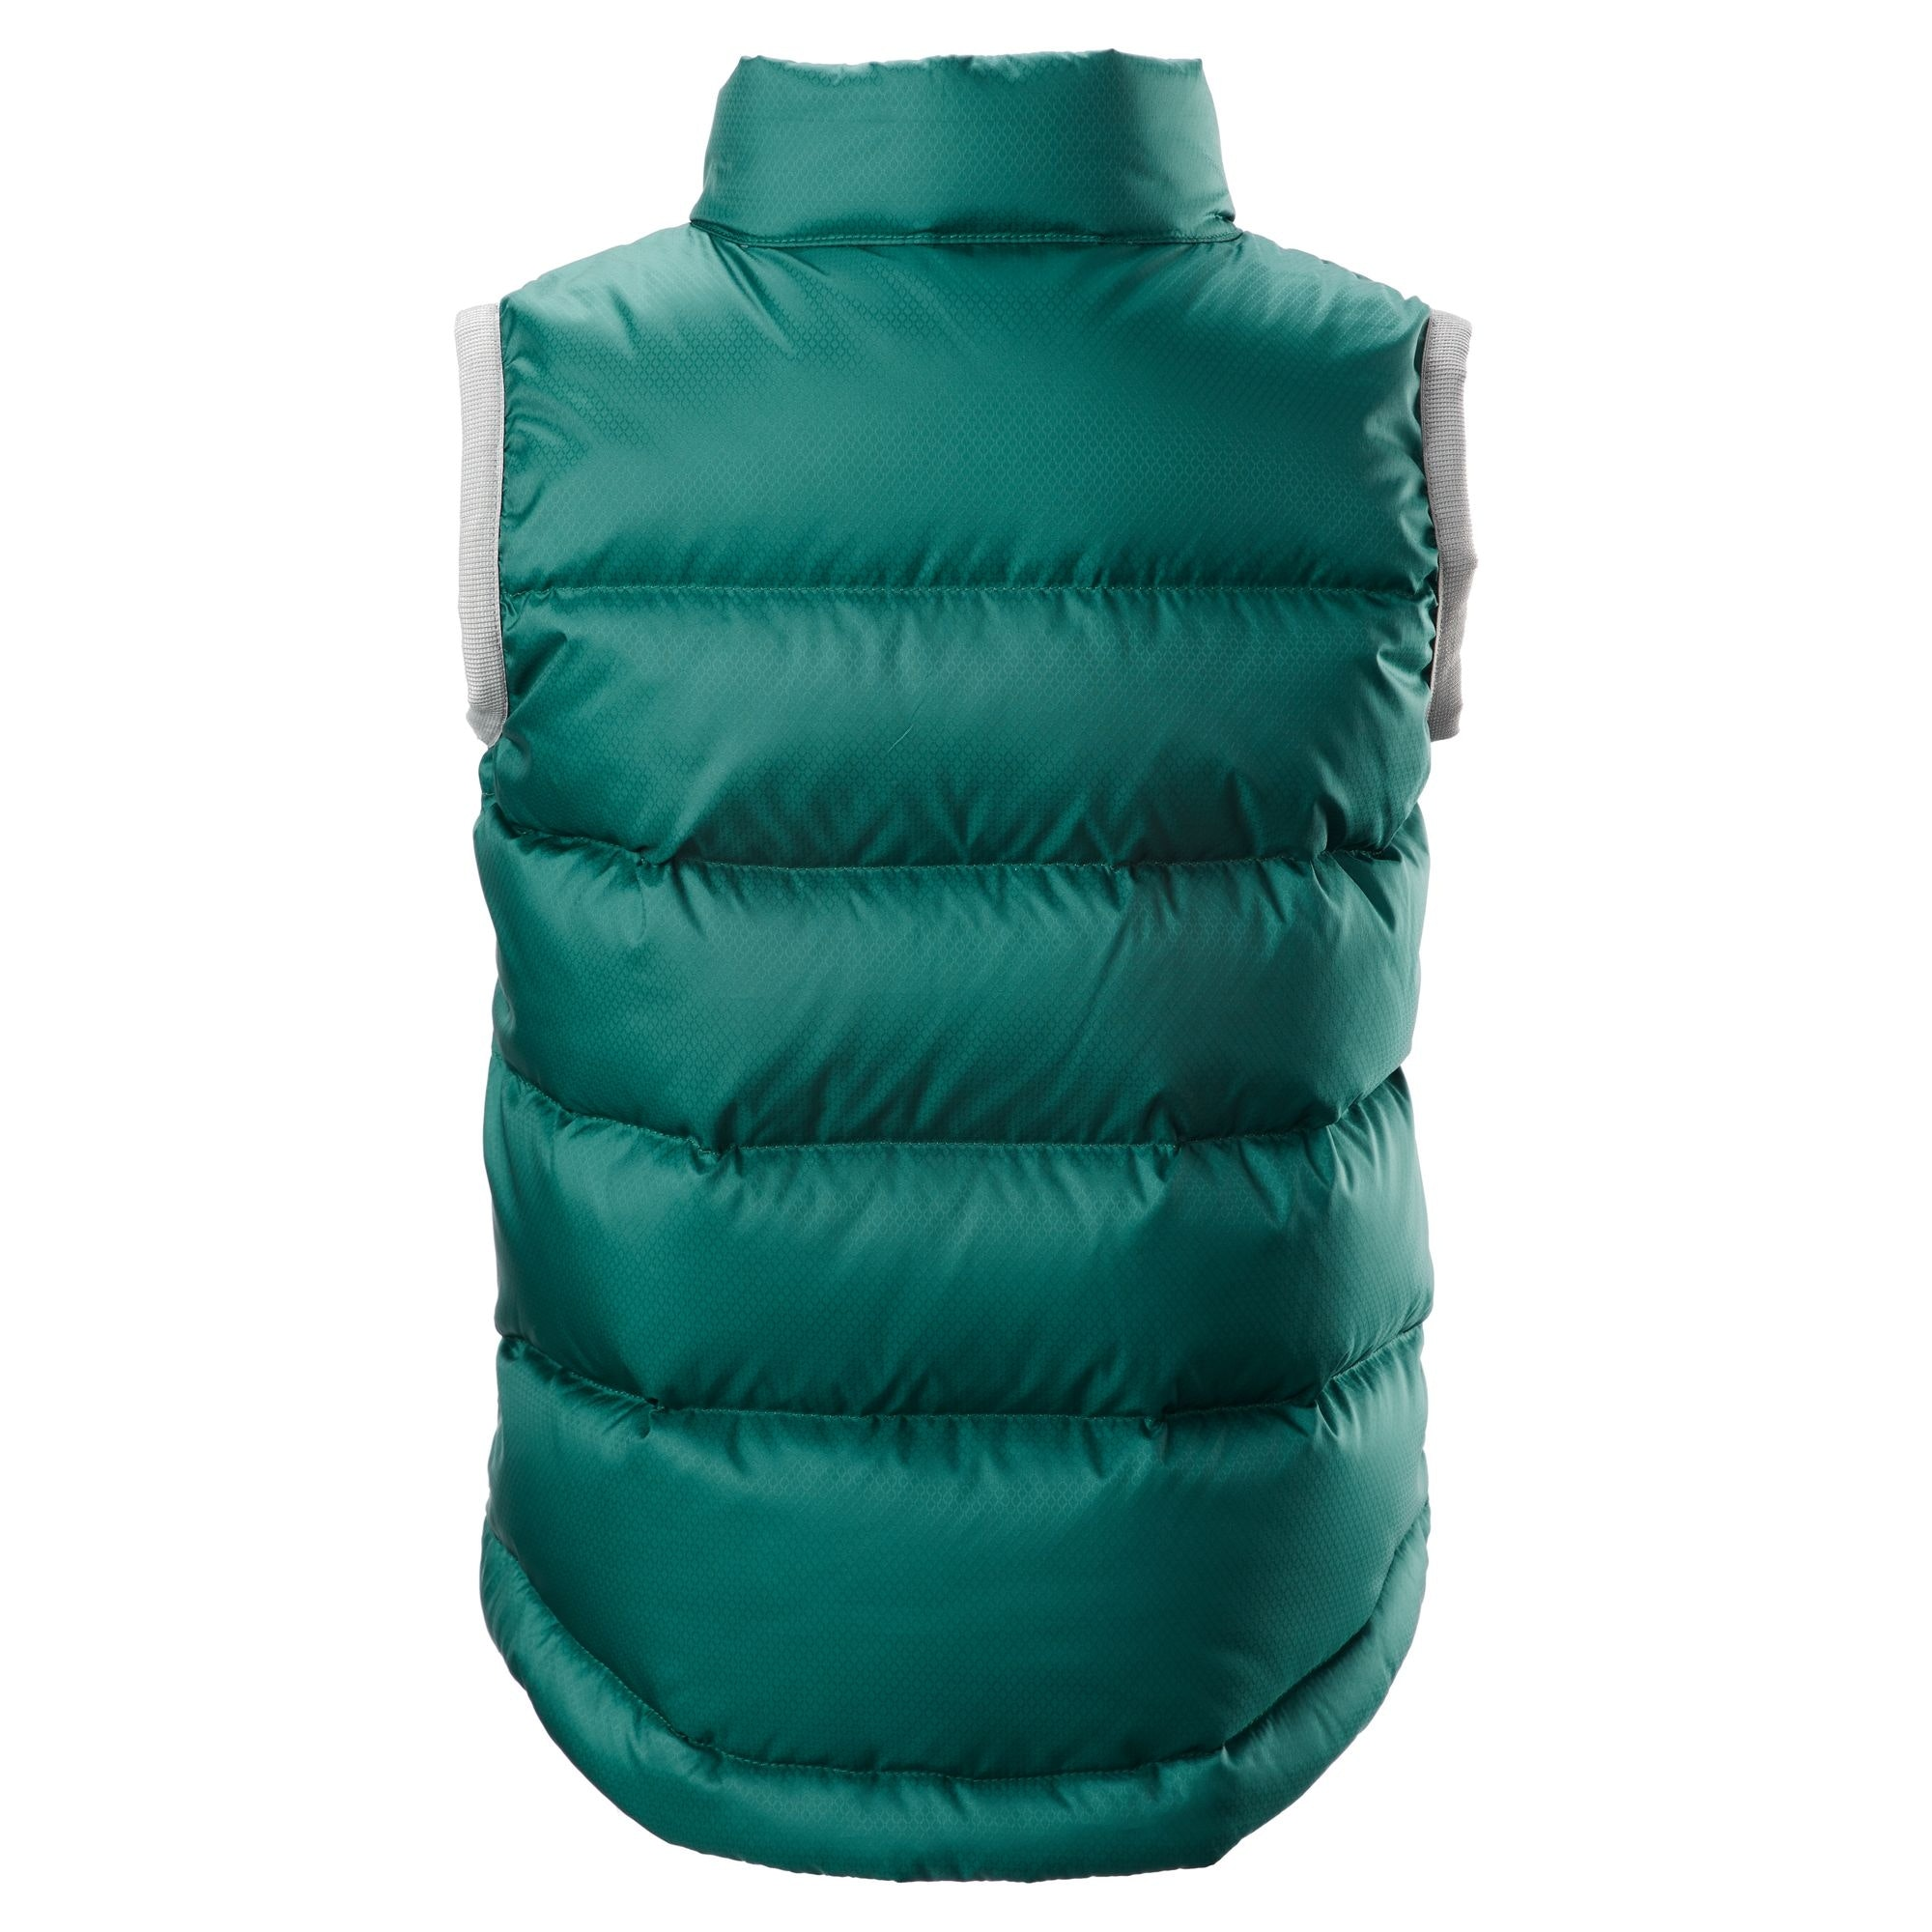 NEW-Kathmandu-Elcho-Kids-039-Boys-039-Girls-039-Warm-Winter-Outdoor-Duck-Down-Puffer-Vest thumbnail 16